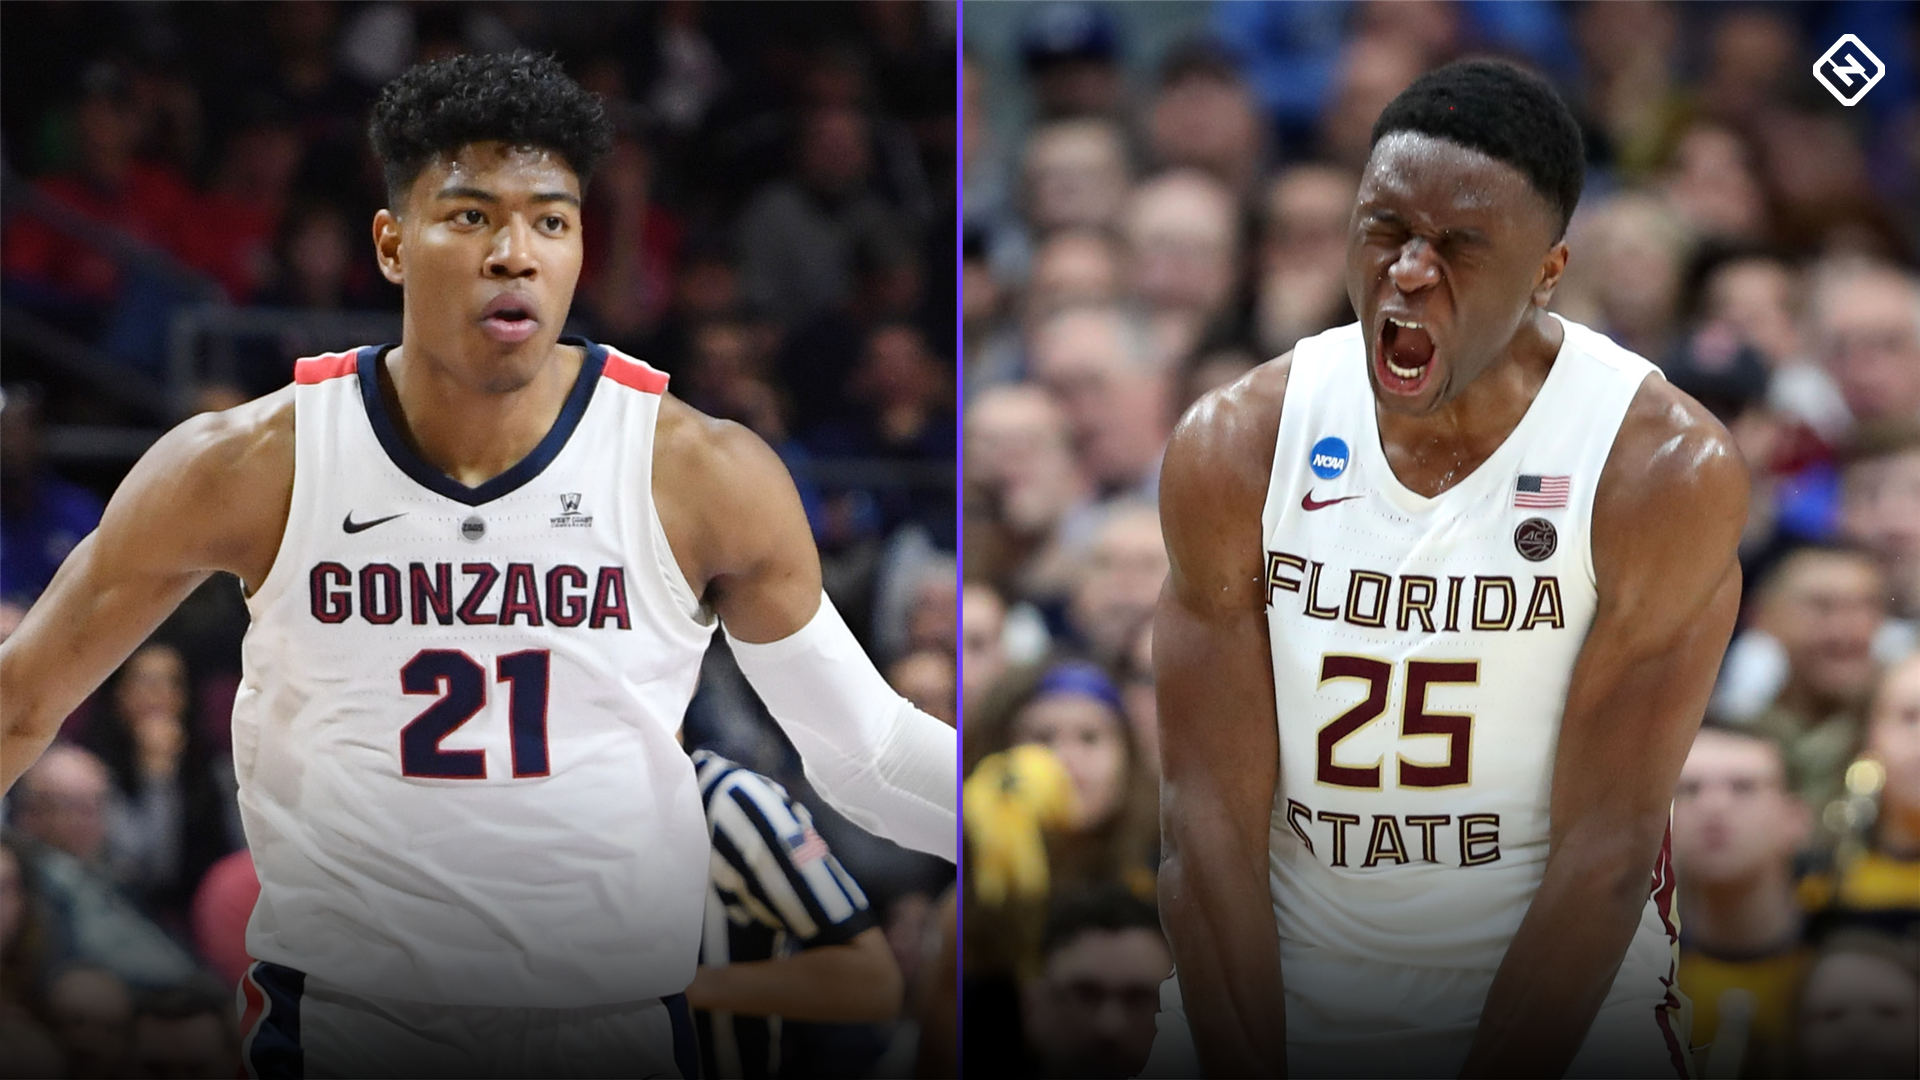 Gonzaga vs Florida State NCAA Tournament Betting Line: Prediction & Pick